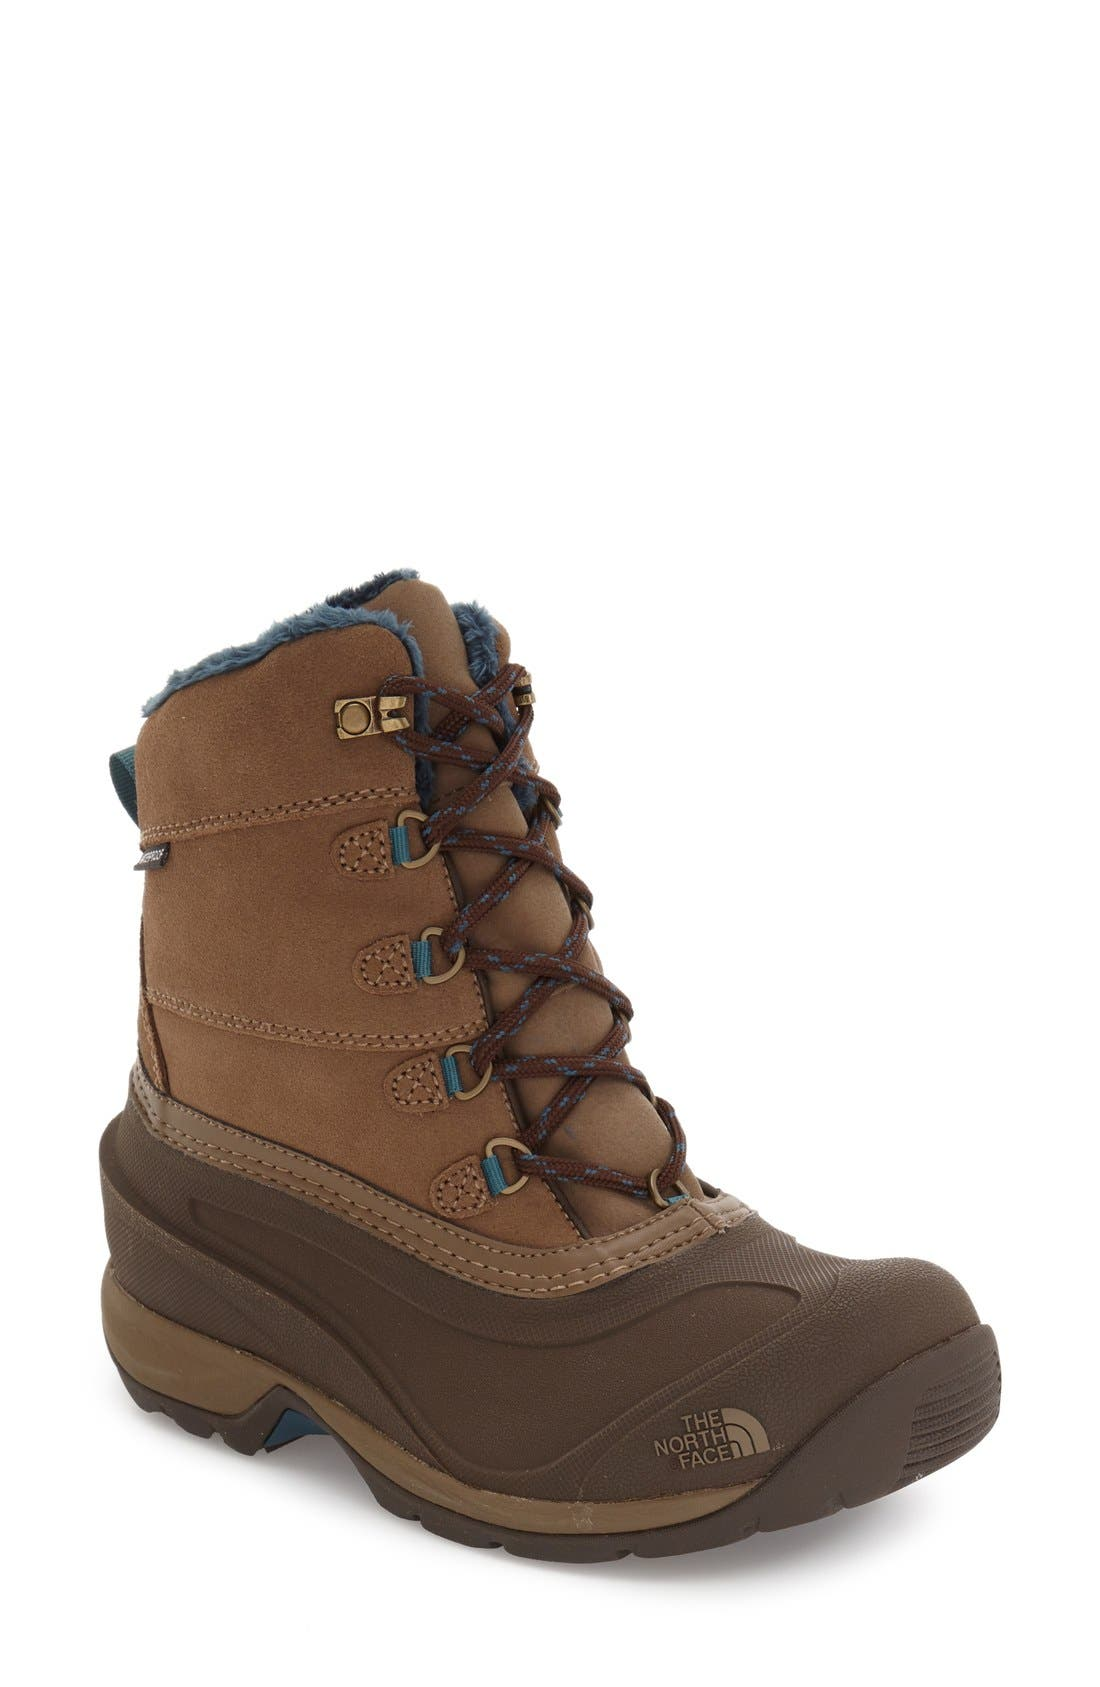 Main Image - The North Face 'Chilkat III' Waterproof Insulated Snow Boot (Women)